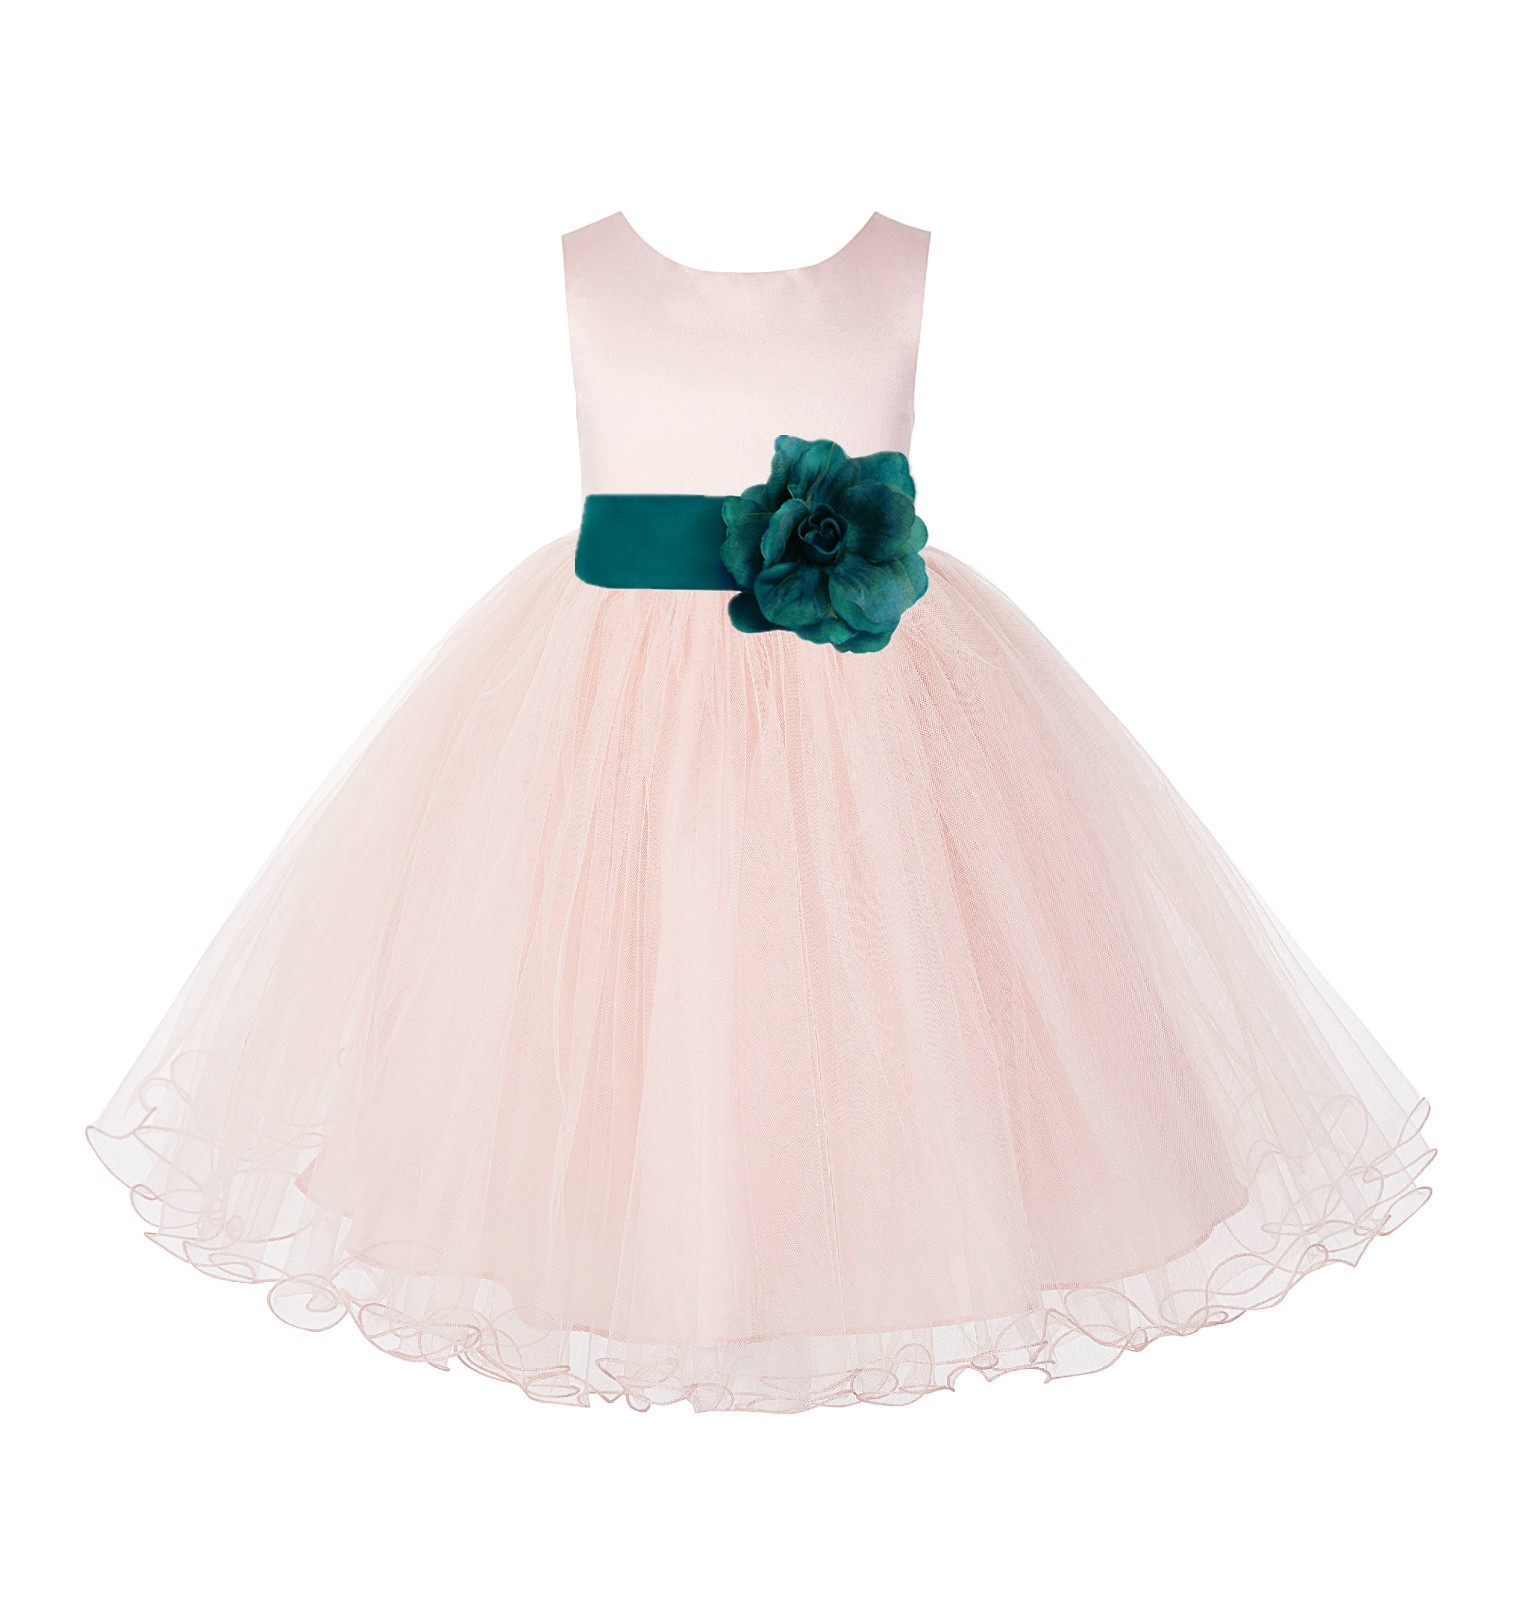 Blush Pink / Oasis Tulle Rattail Edge Flower Girl Dress Pageant Recital 829S